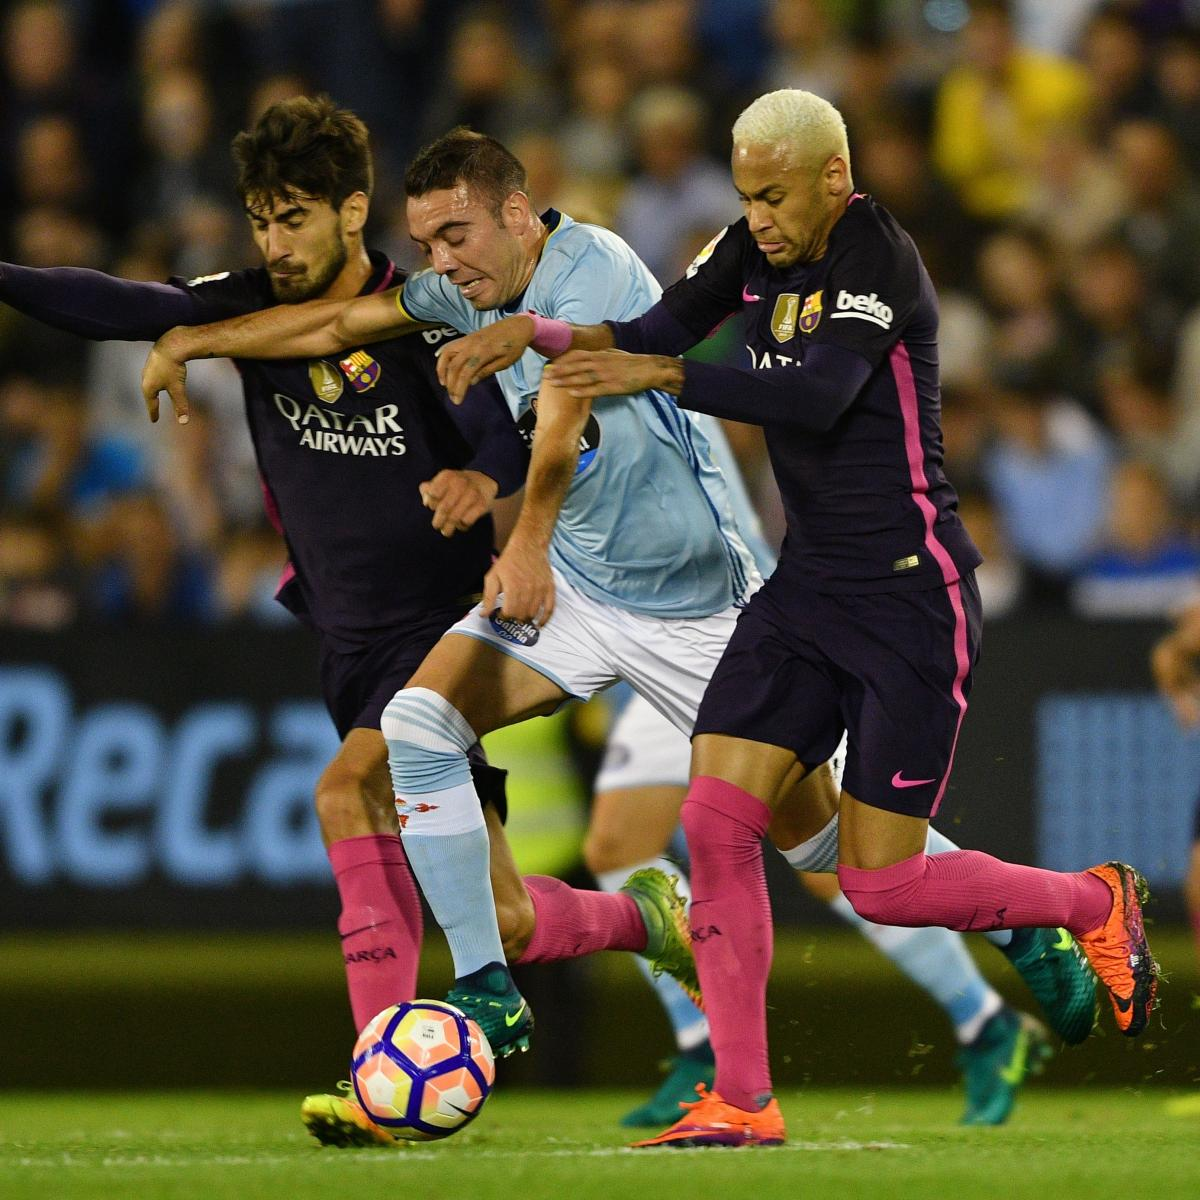 Barcelona Vs Celta Vigo In Youtube: Celta Vigo Vs. Barcelona: Score And Reaction From 2016 La